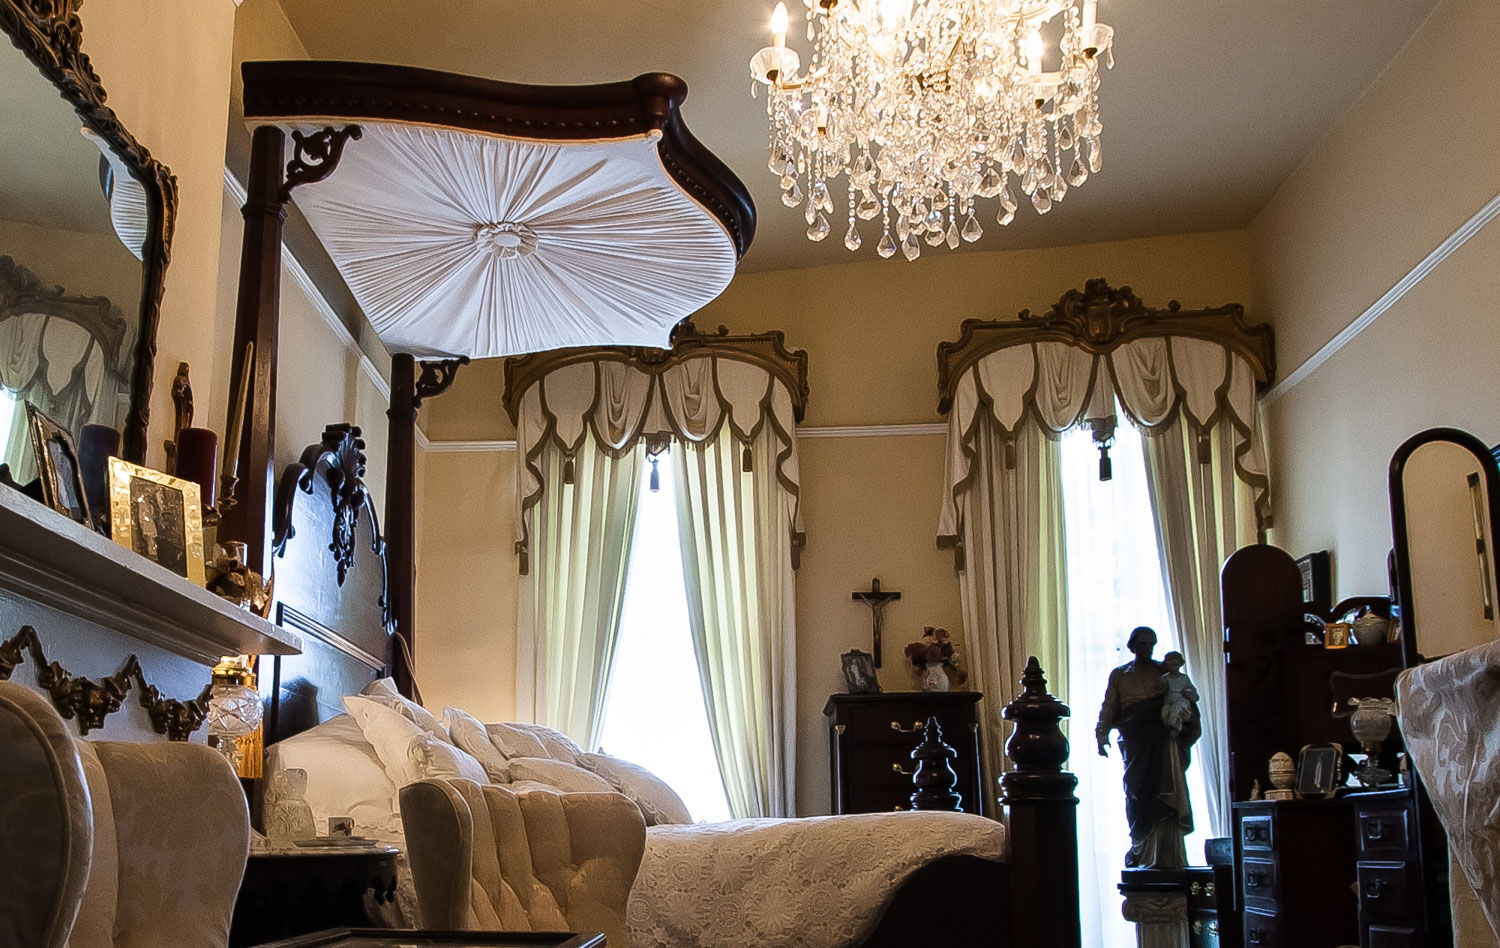 Bed Canopy & Drapes with Cornice